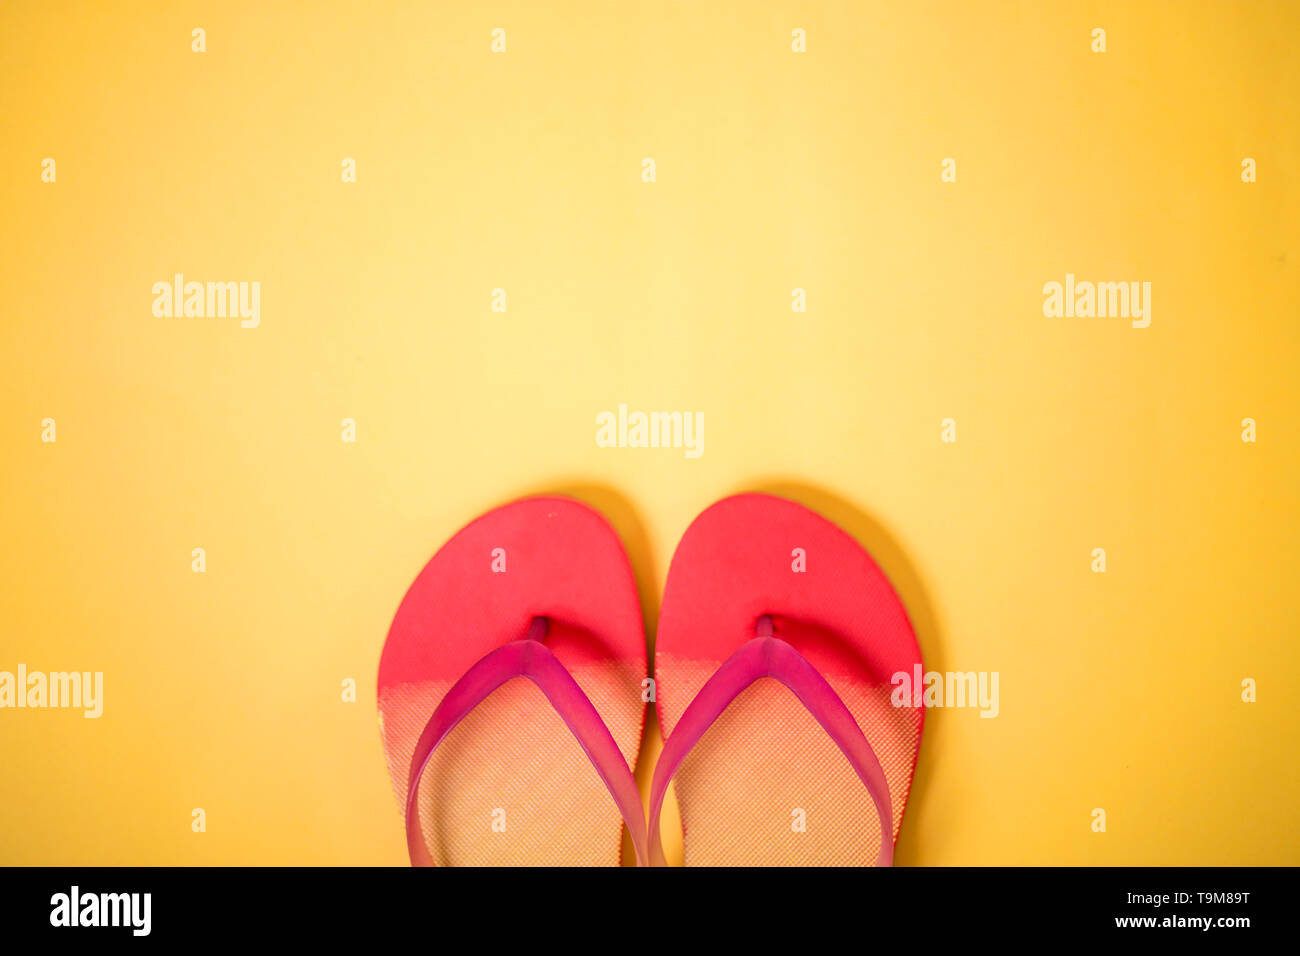 Coral pink flip flops on yellow background with copy space. Flat lay, horizontal shot. Summertime, vacation, beach, shoes concept. - Stock Image